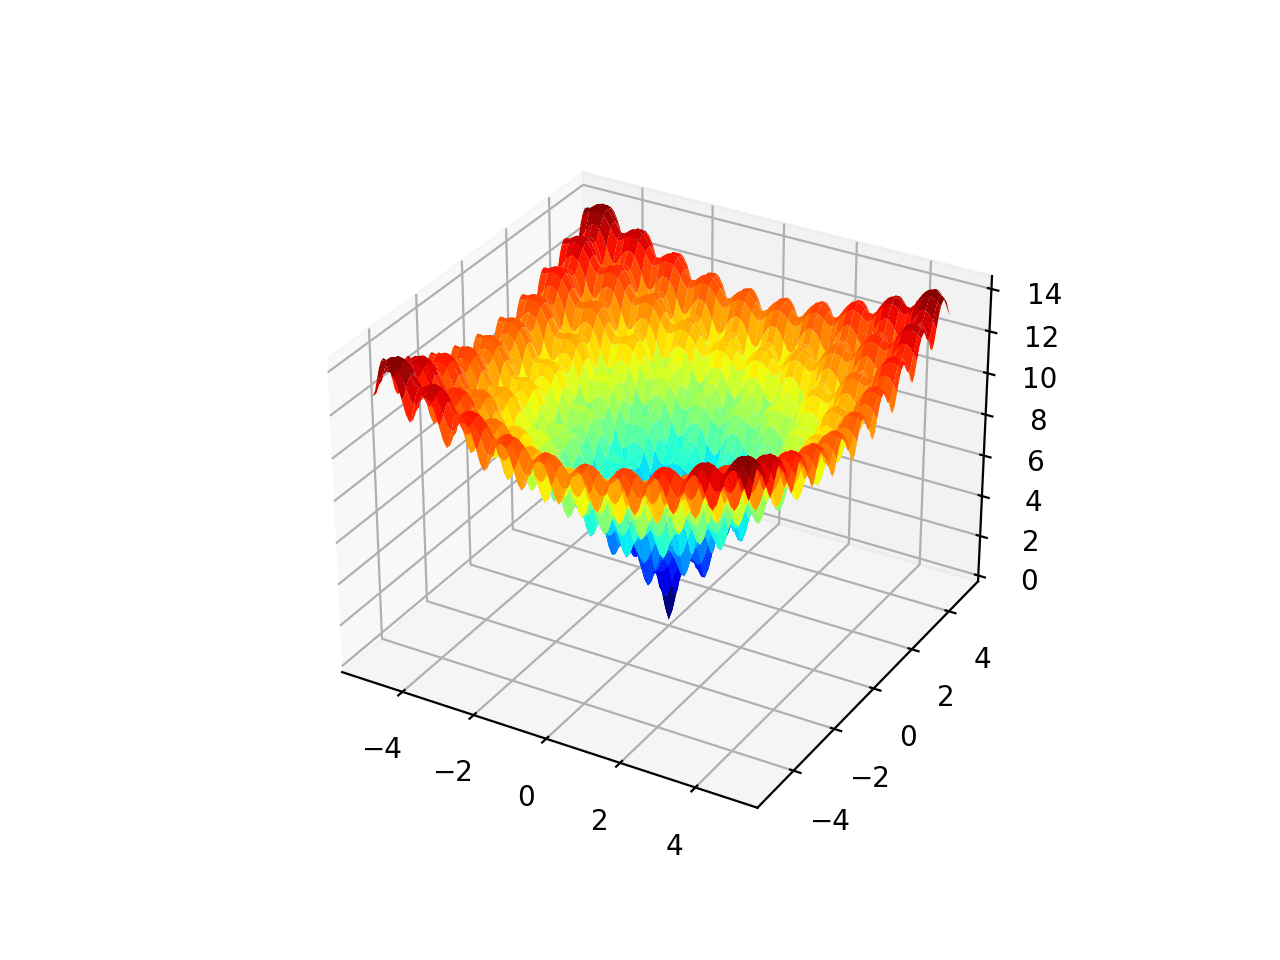 3D Surface Plot of the Ackley Multimodal Function